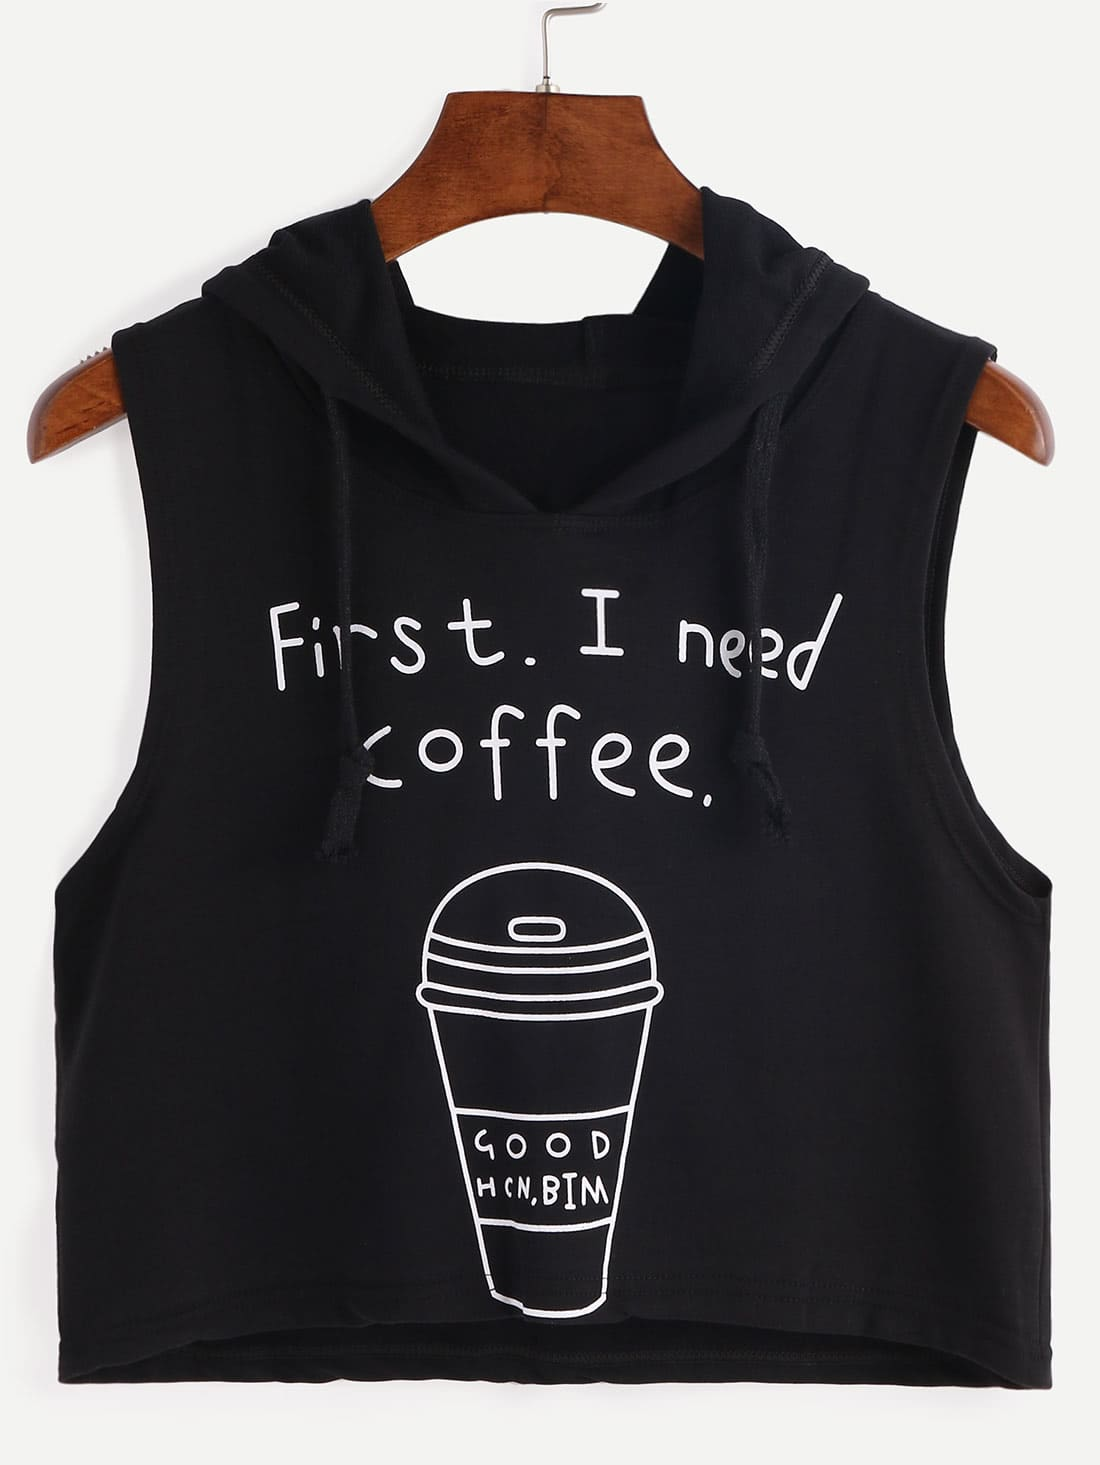 Hooded Coffee Cup Print Sleeveless Black Dip Hem TopHooded Coffee Cup Print Sleeveless Black Dip Hem Top<br><br>color: Black<br>size: one-size